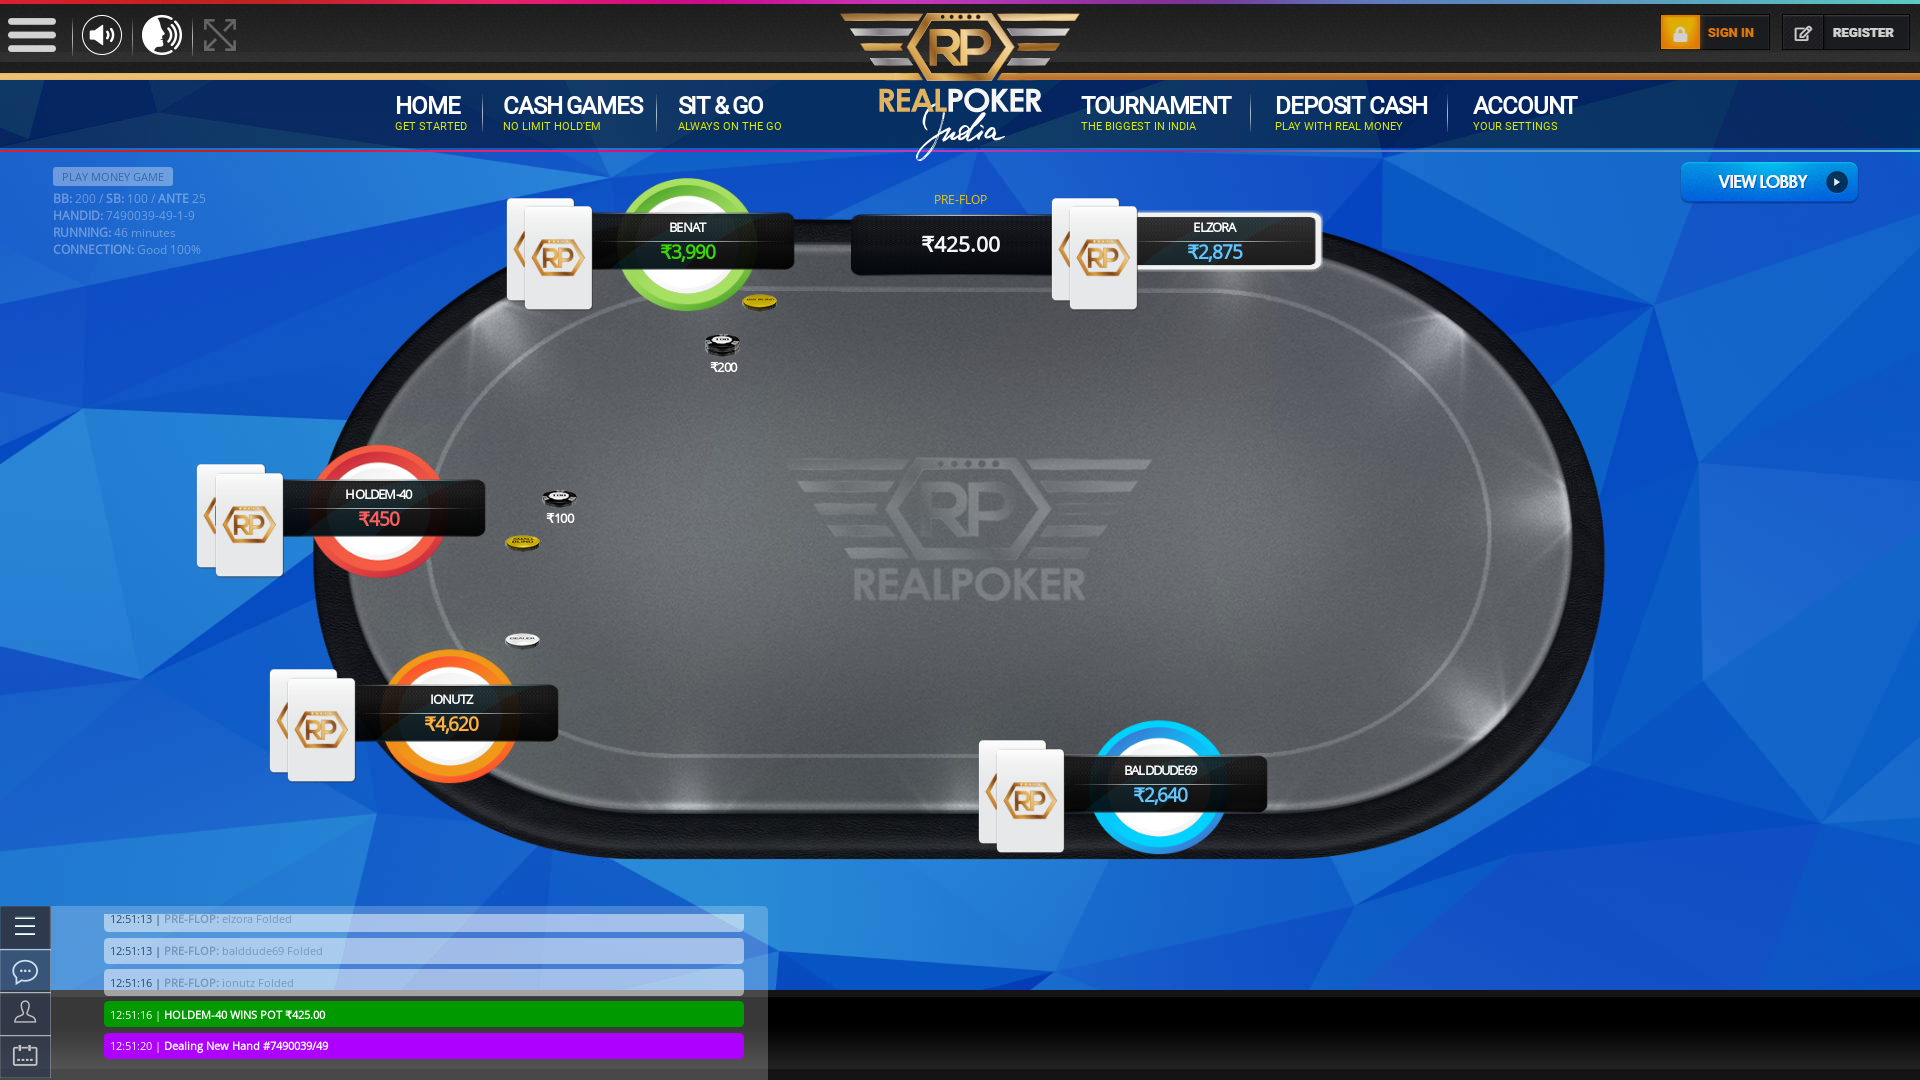 Real poker 10 player table in the 46th minute